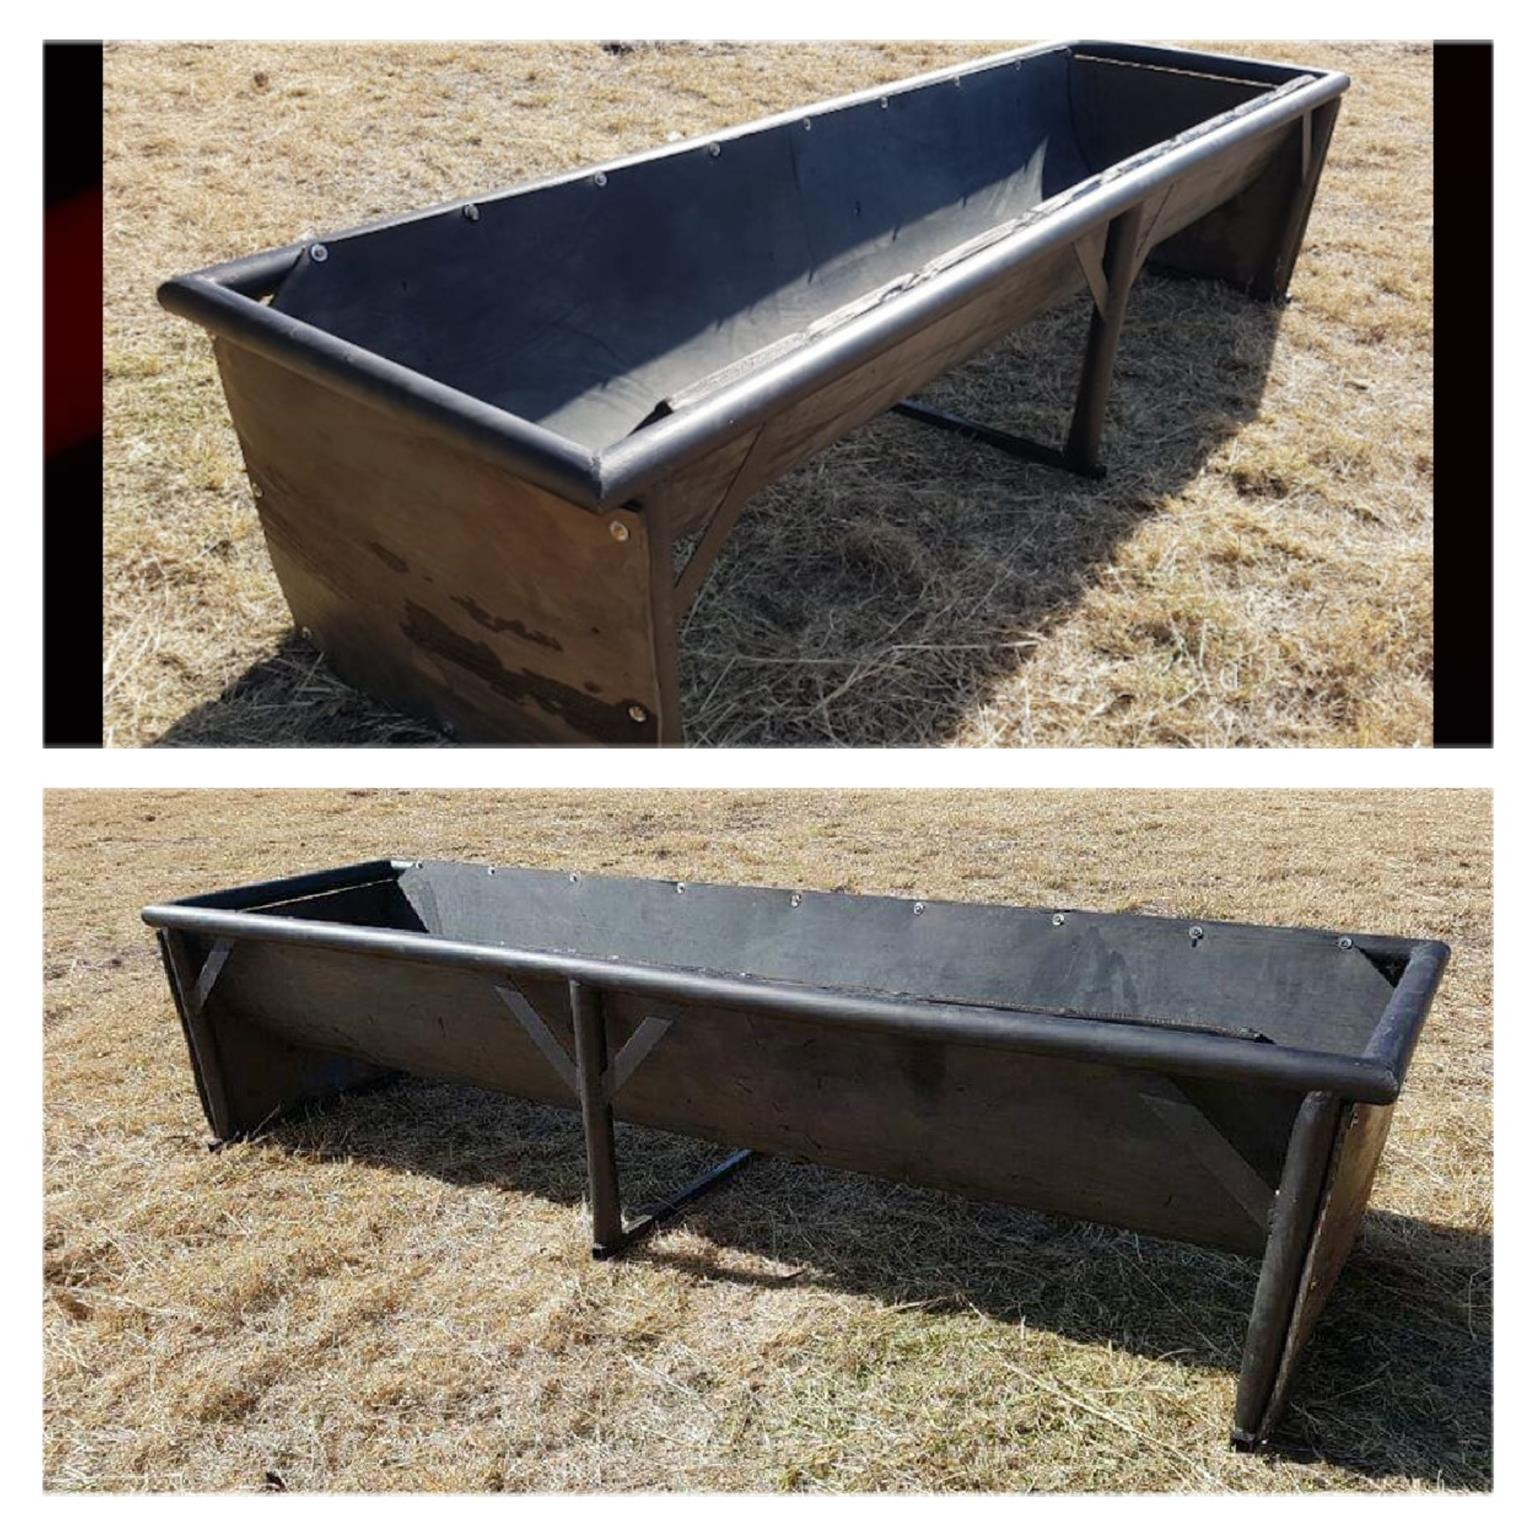 Best quality feeding troughs at the lowest prices